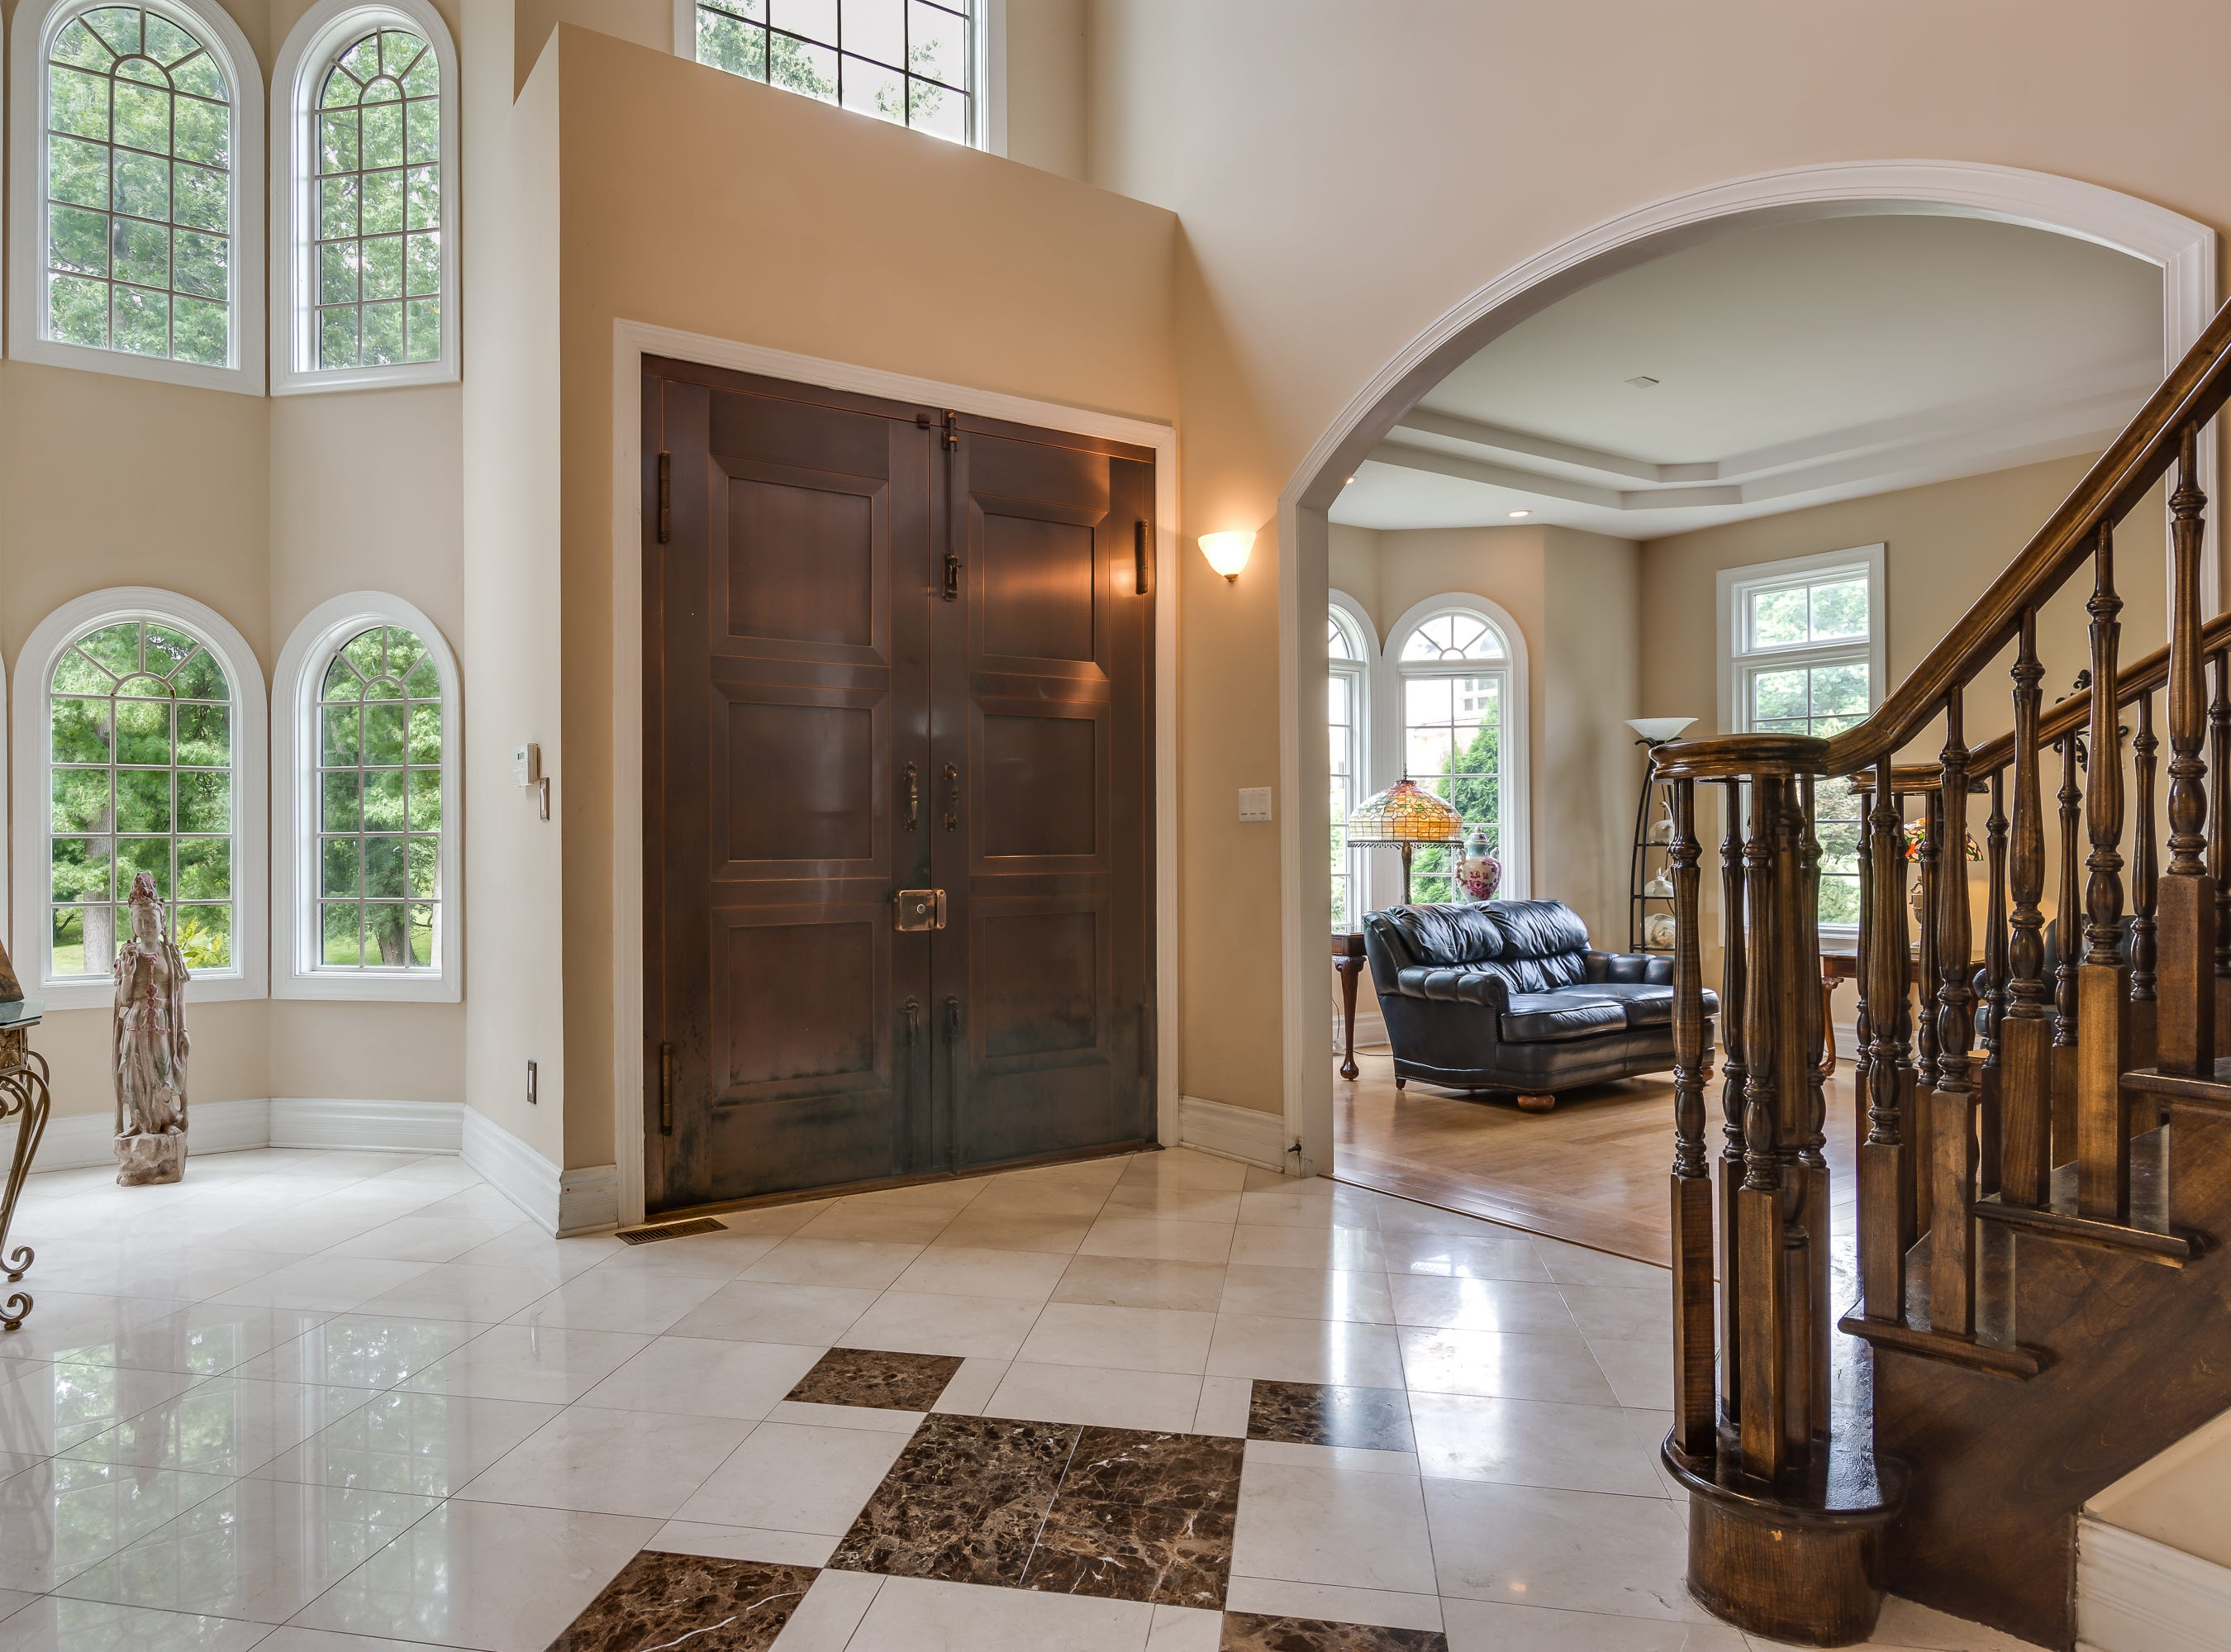 The two-story foyer features a marble floor and a winding maple staircase to the second floor and its balcony overlook. Through the arch, you can see the formal living room with its bamboo floor and tray ceiling.